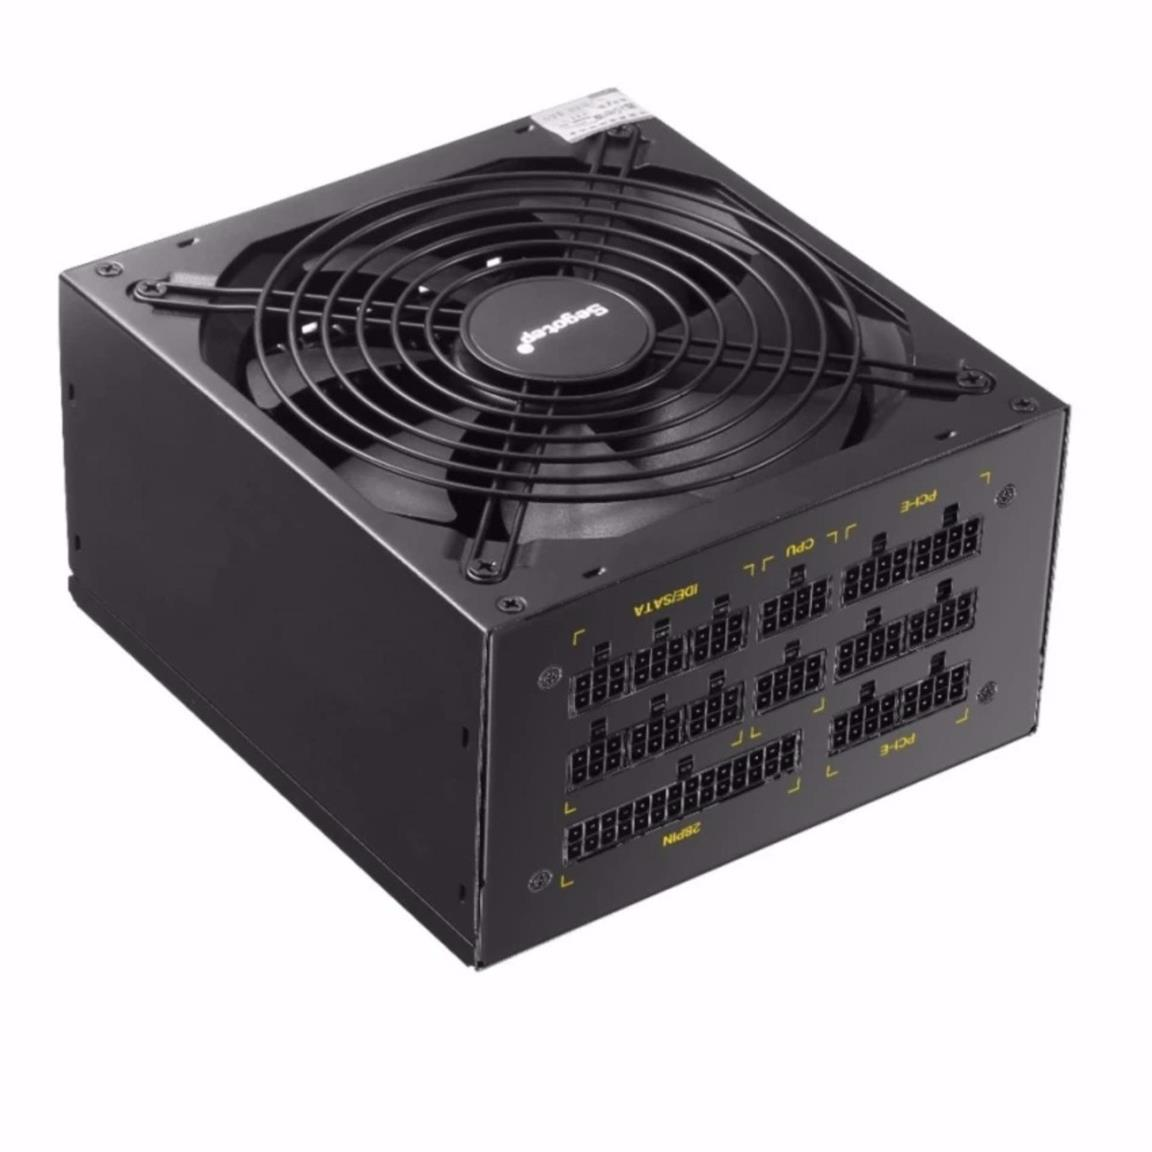 Segotep GP1350 - 1250w 80plus GOLD